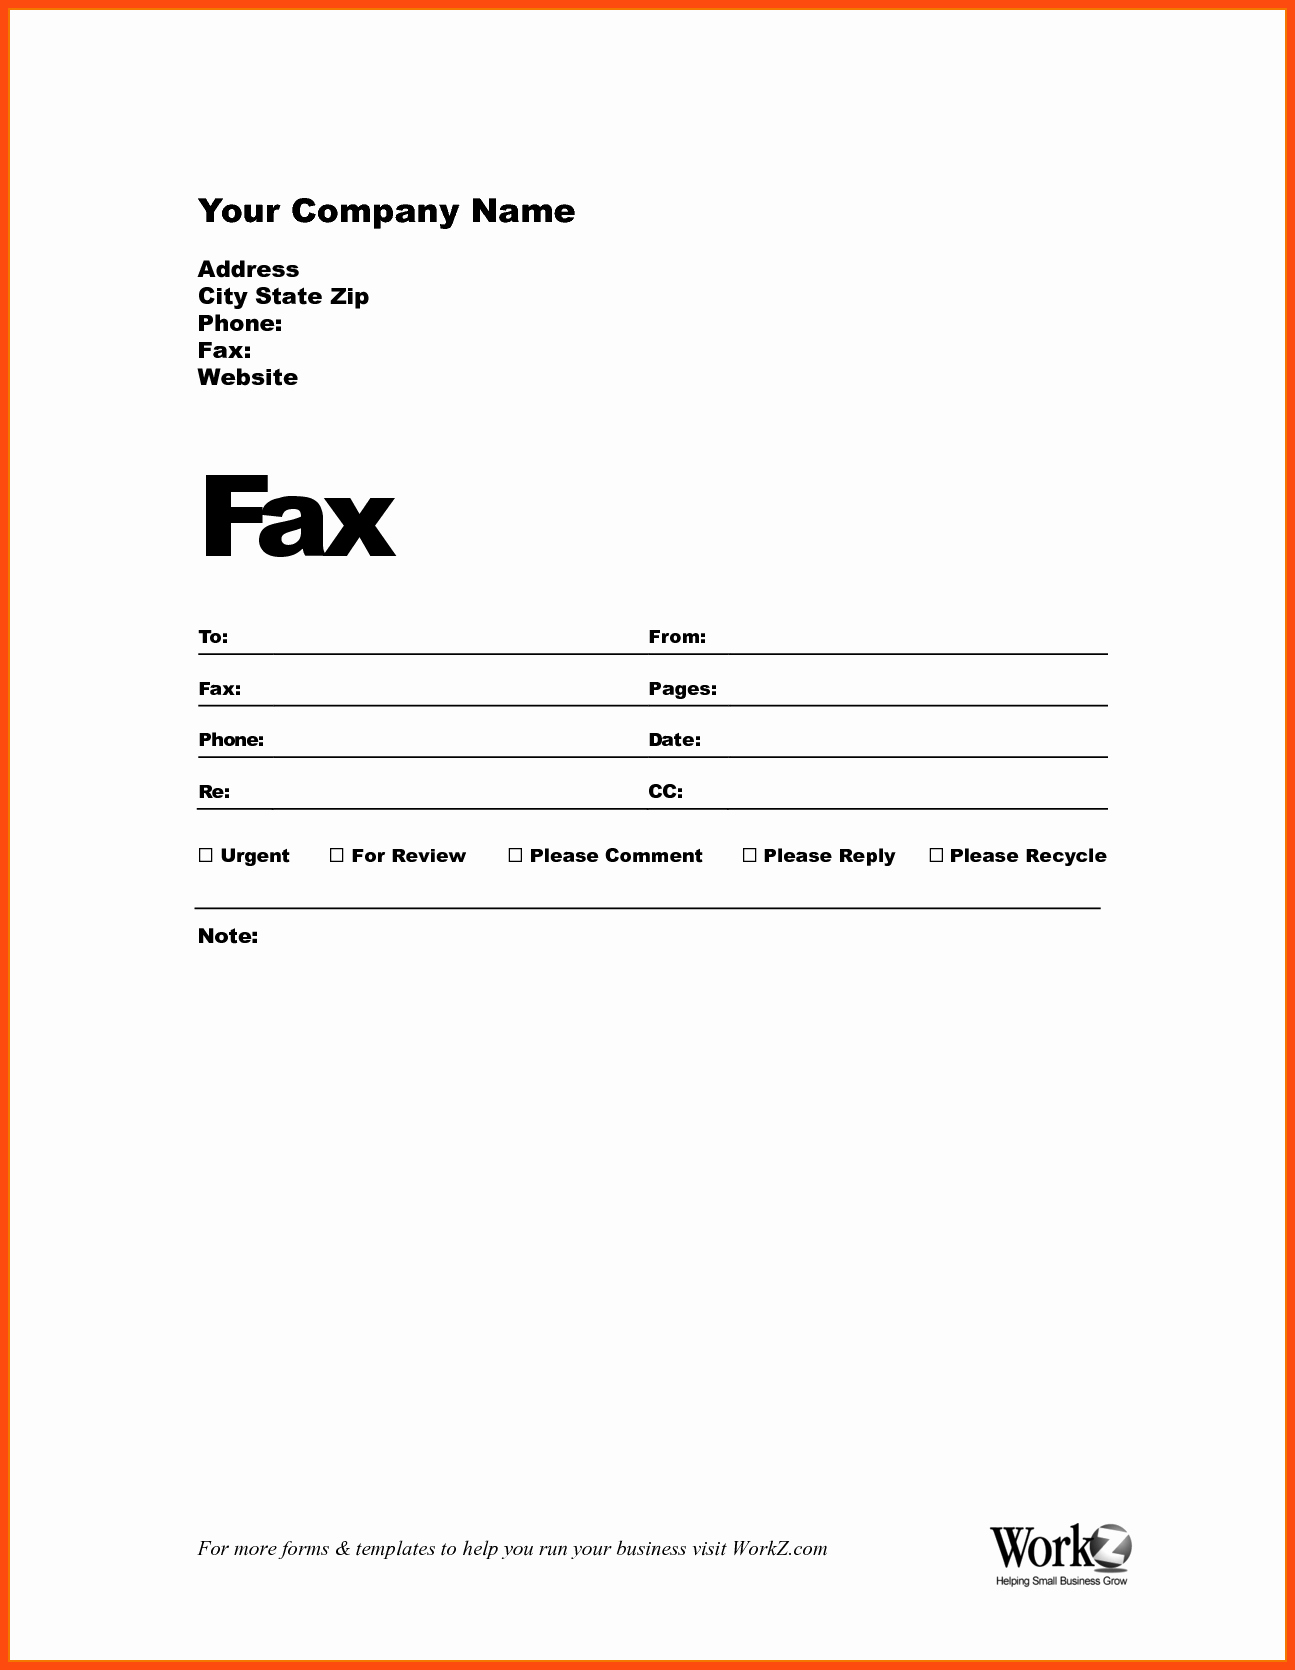 Fillable Fax Cover Sheet Template New How to Fill Out A Fax Cover Sheet